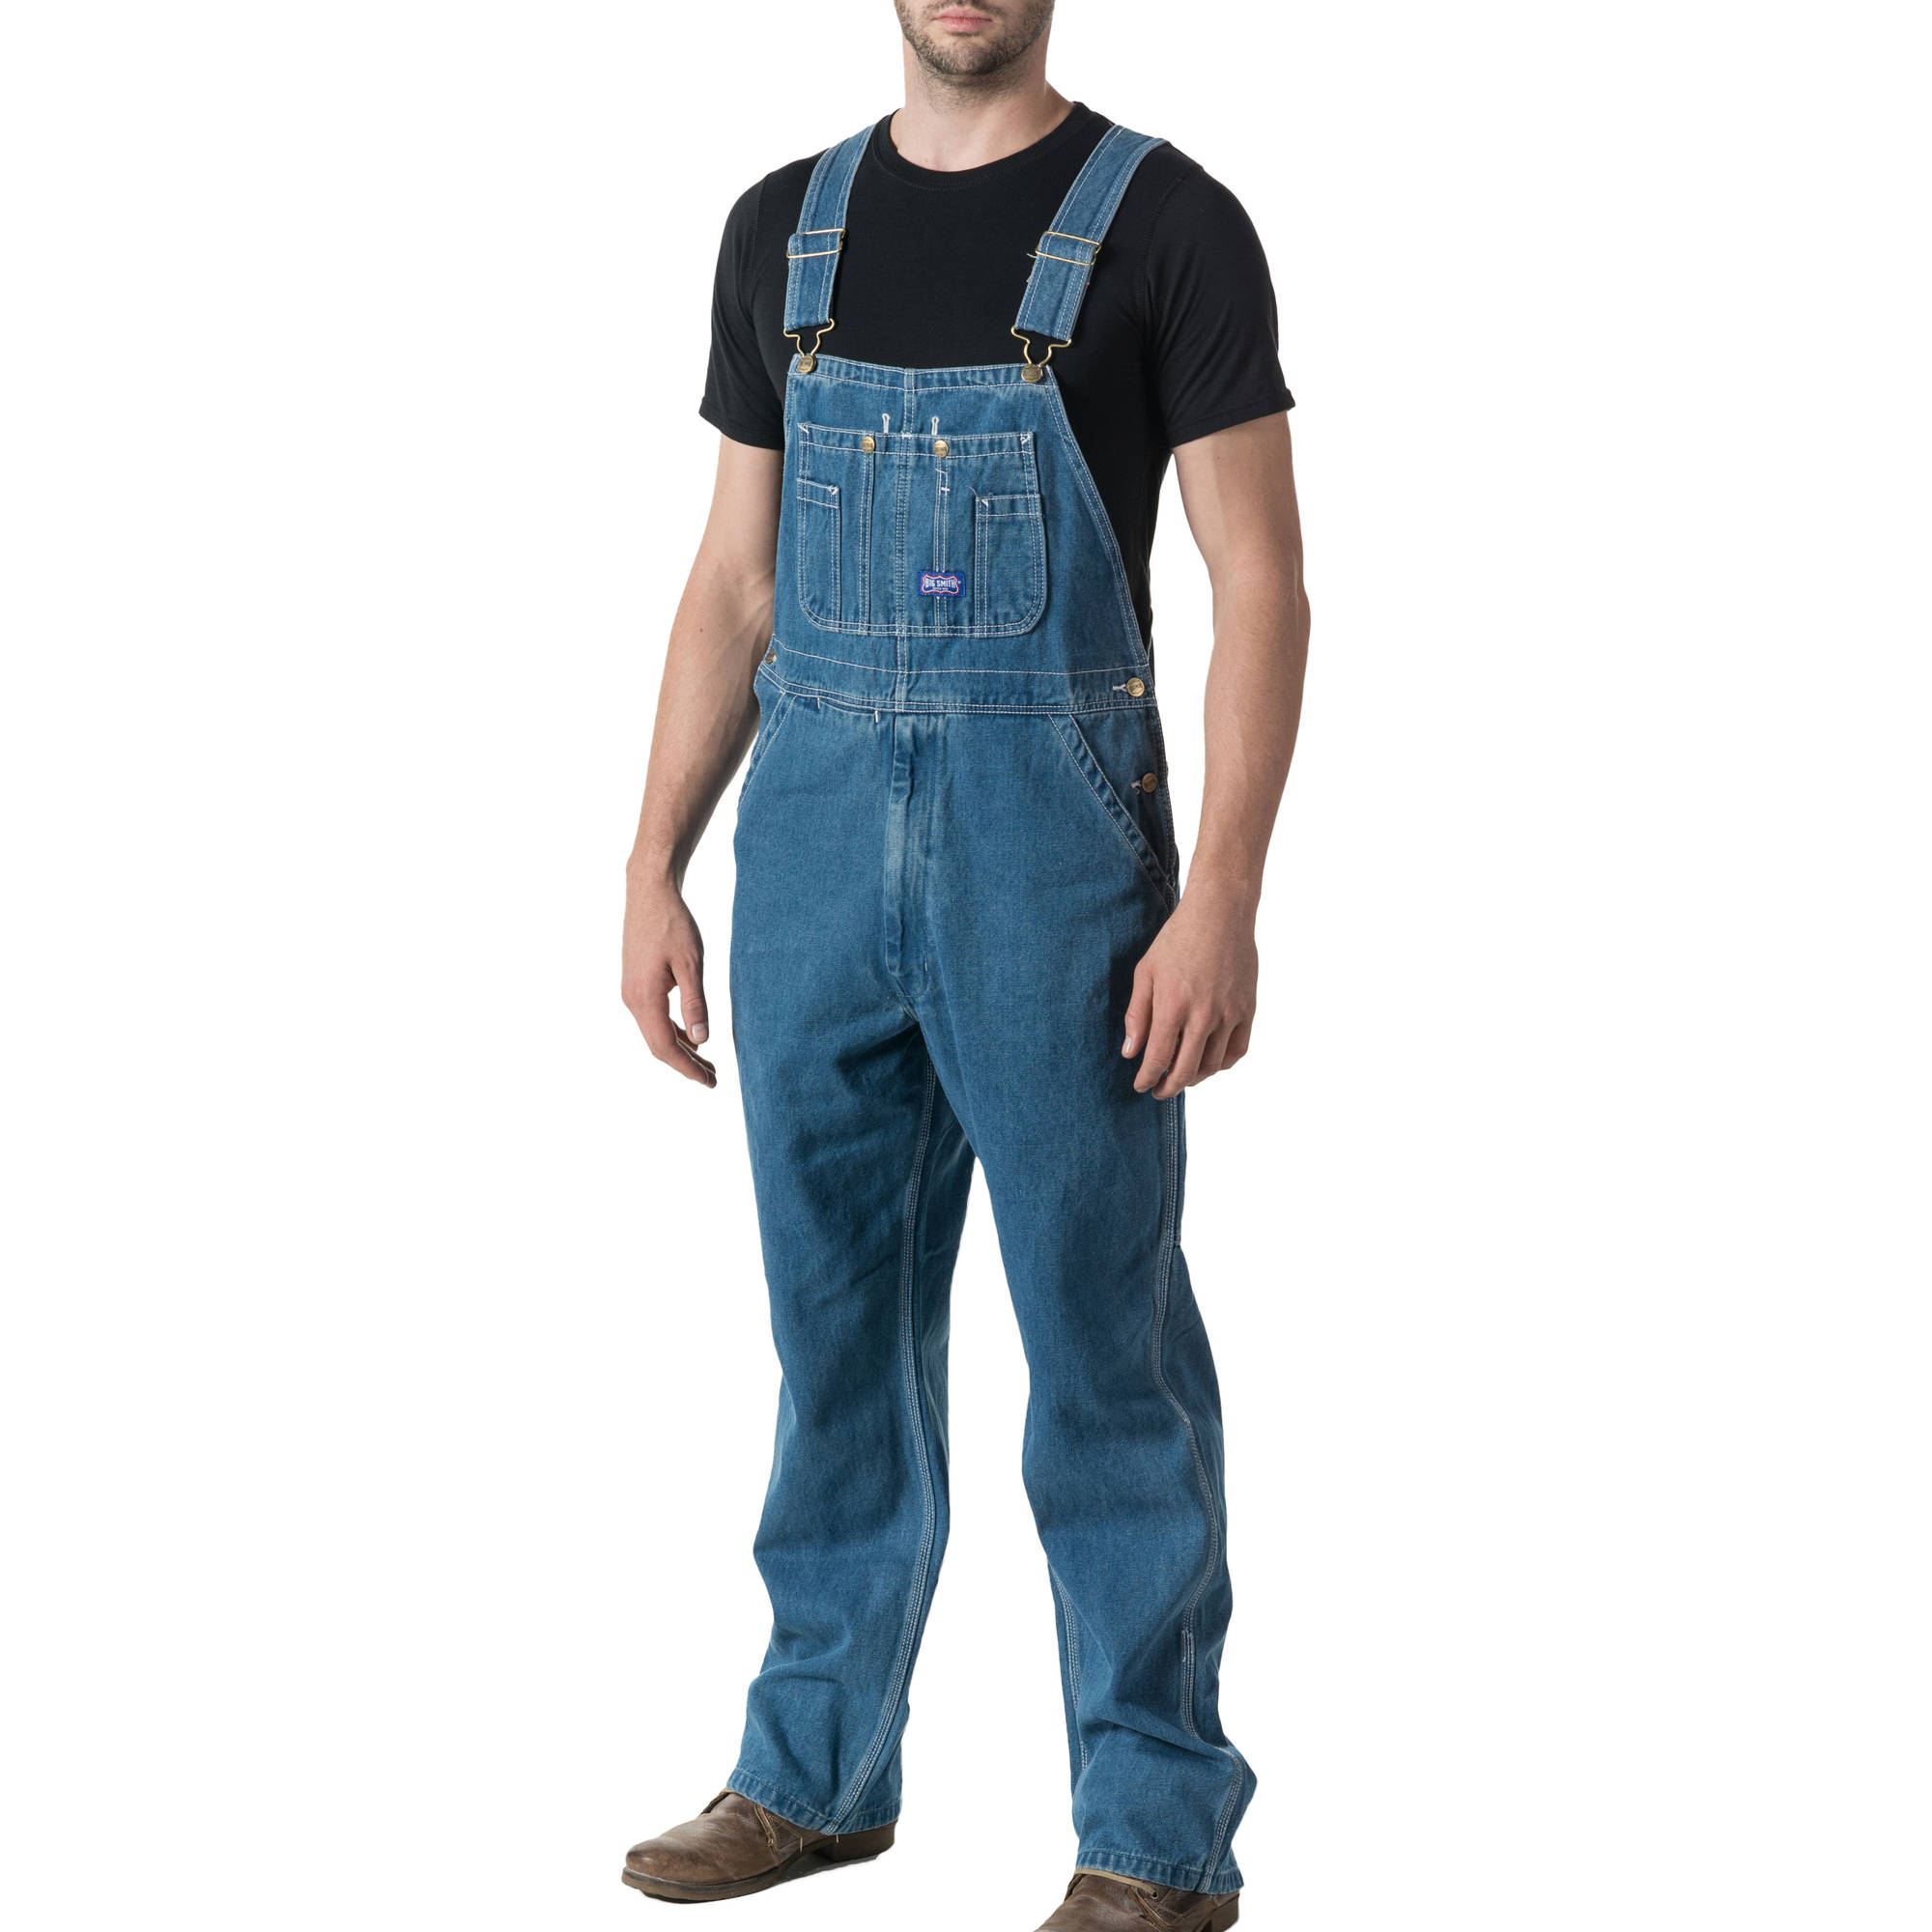 Big Men's 100% Cotton Stonewashed Denim Bib Overall